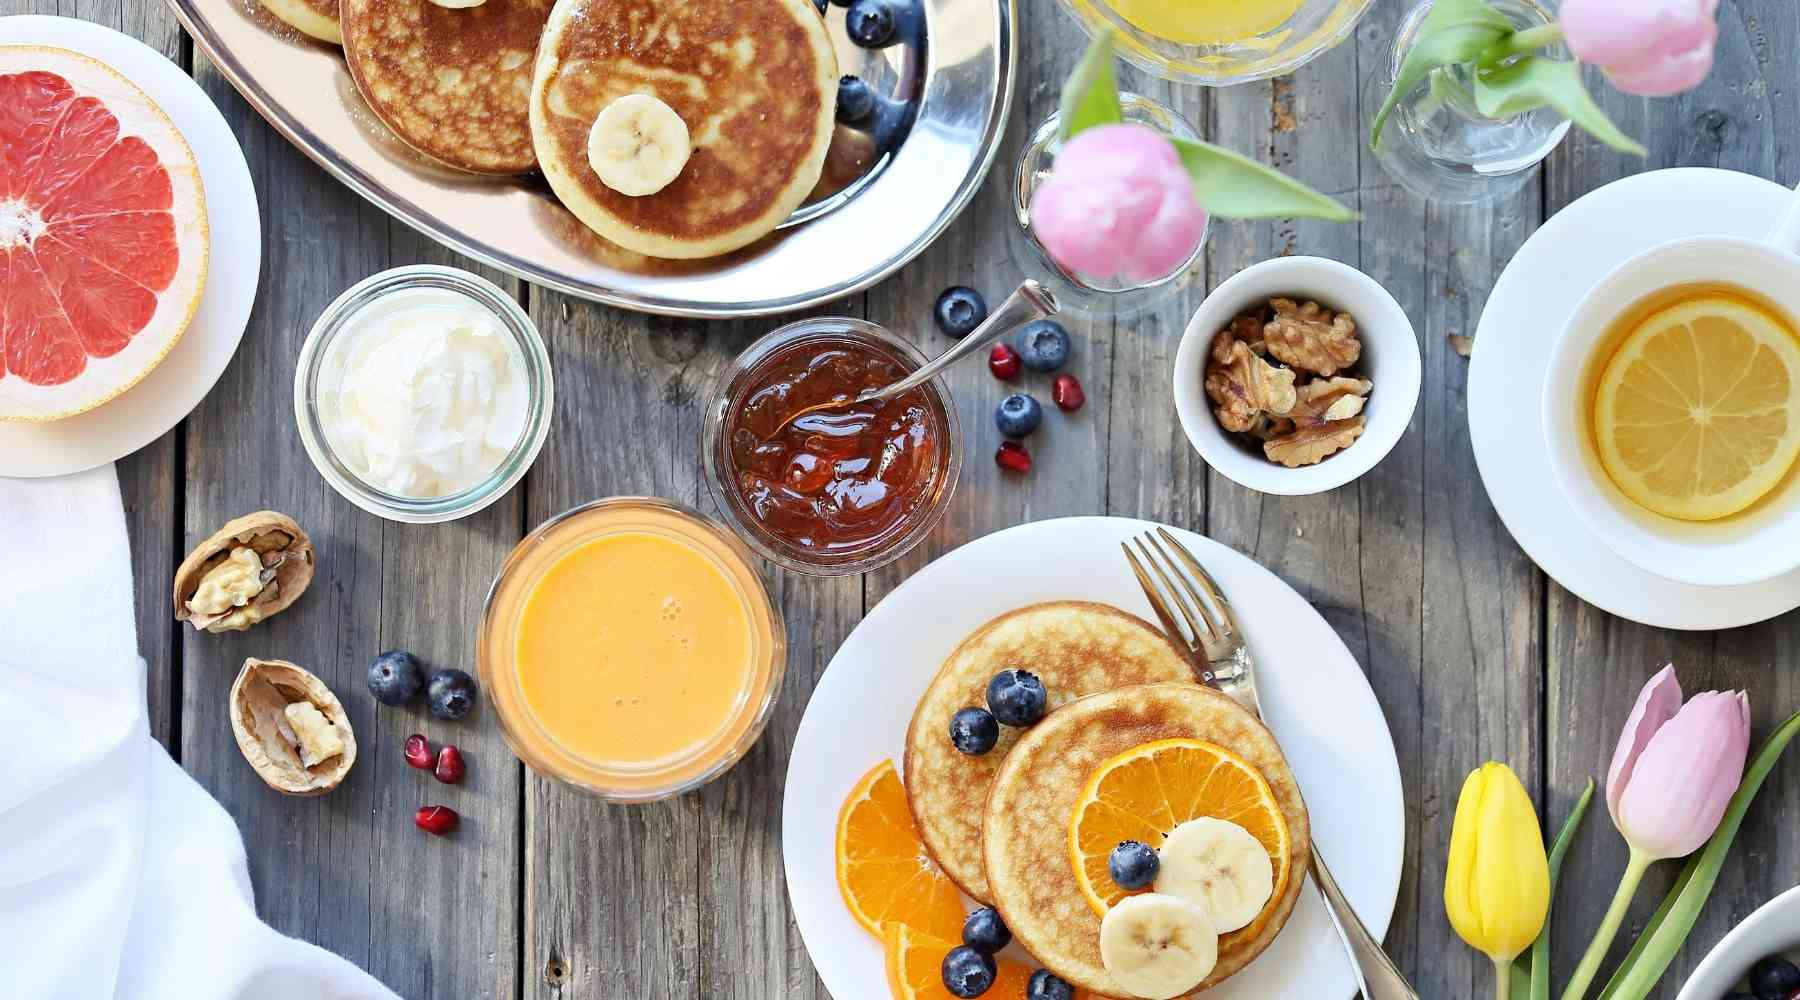 brunch - Creative ways to save money on your wedding: Top 20